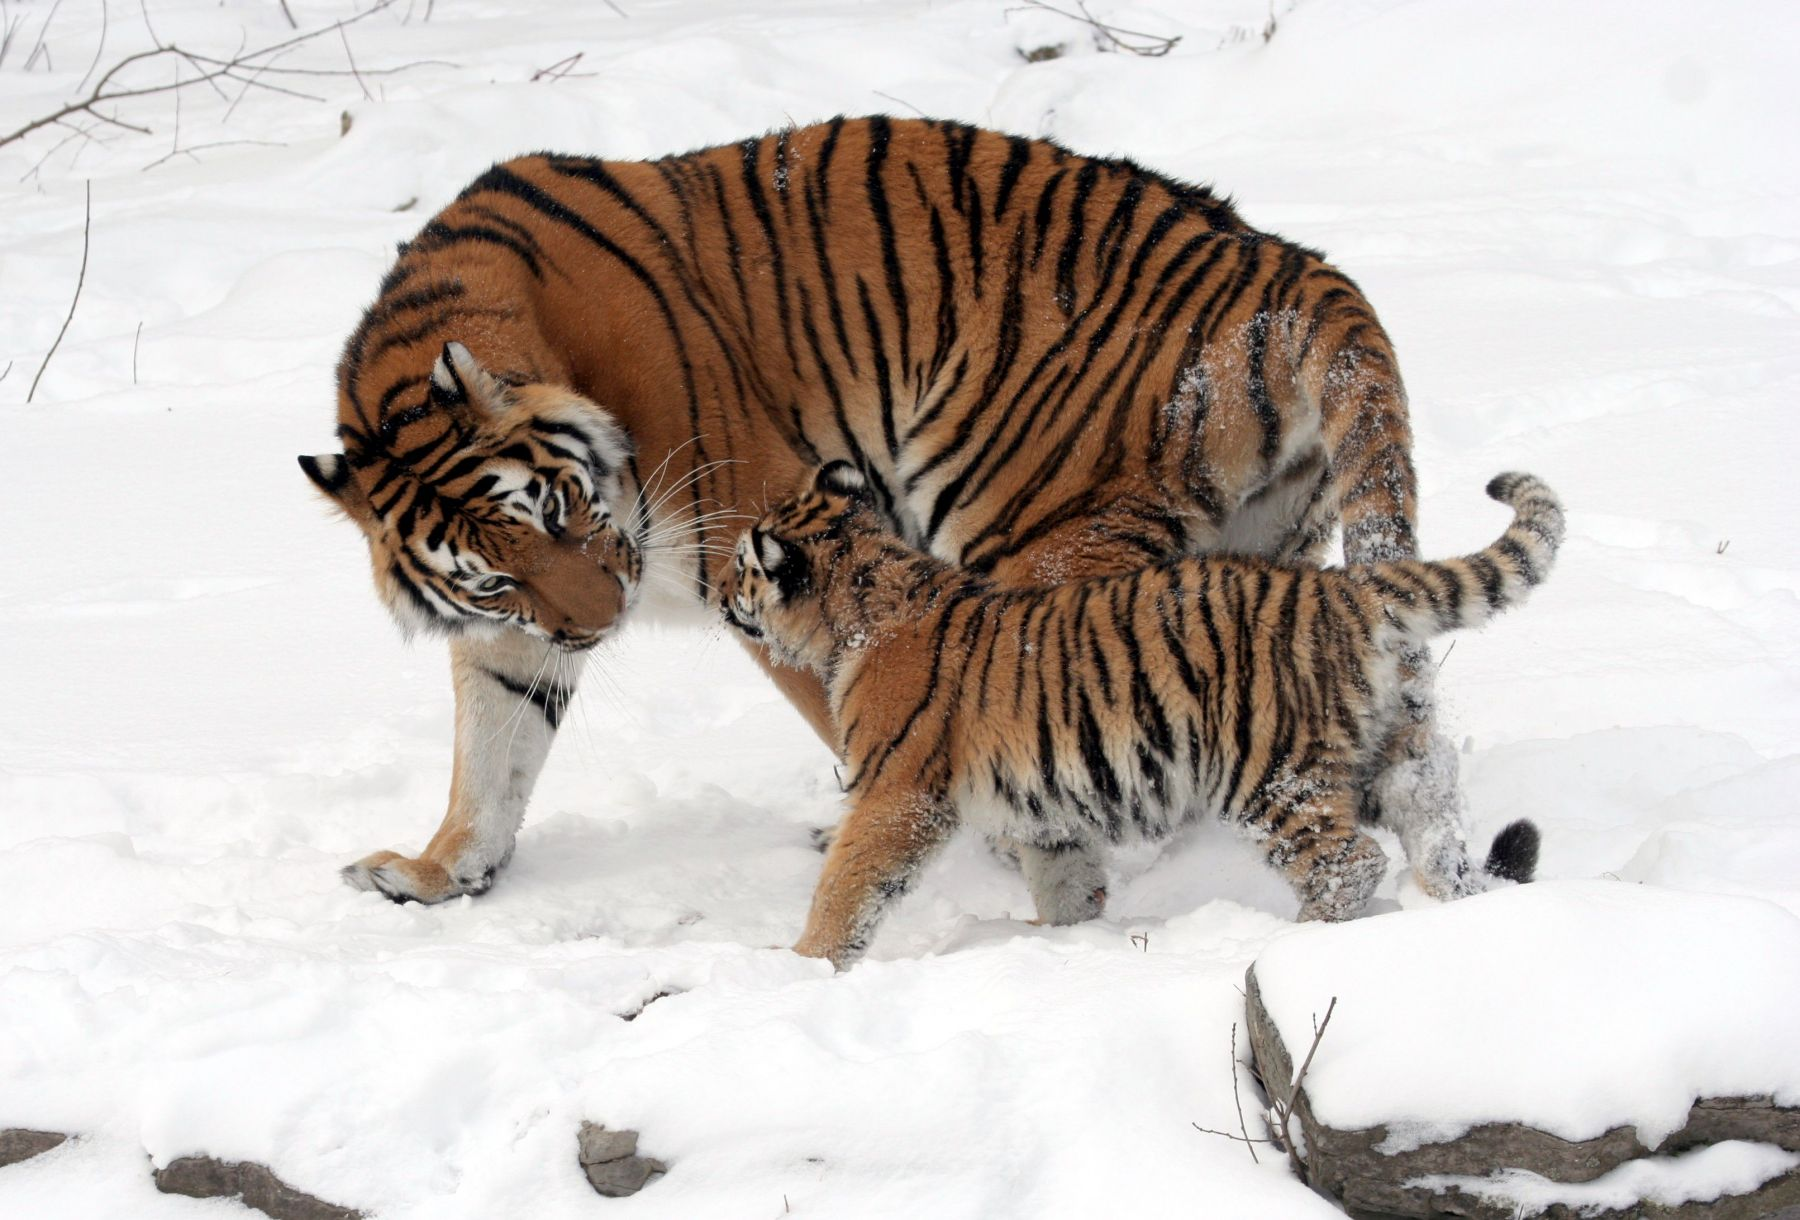 Wildlife corridor built in russia to help save endangered tigers and leopards